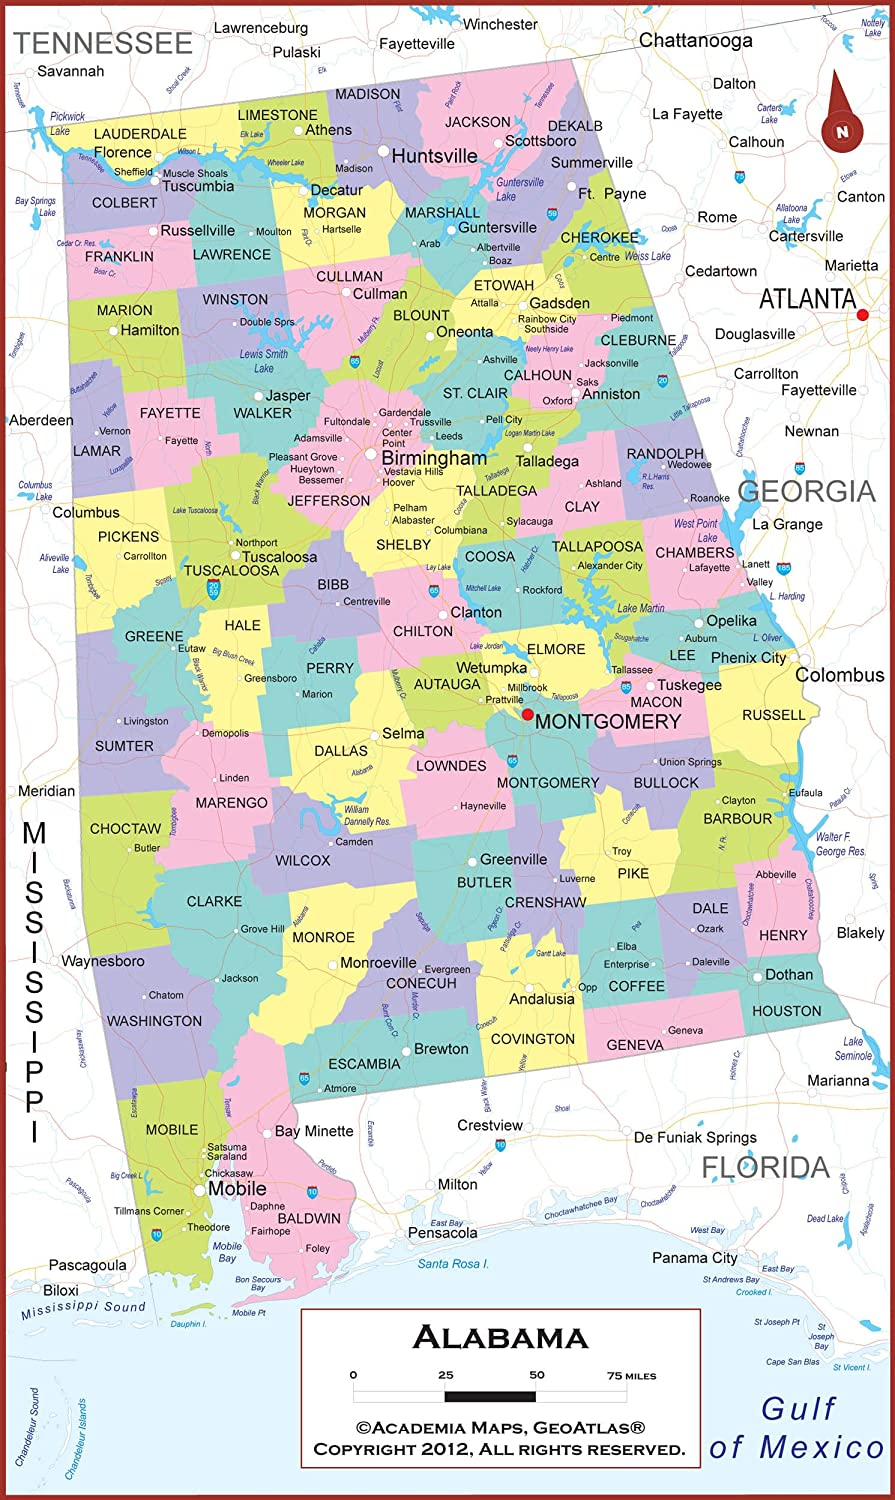 Amazon.com : 21 x 36 Alabama State Wall Map Poster with ...